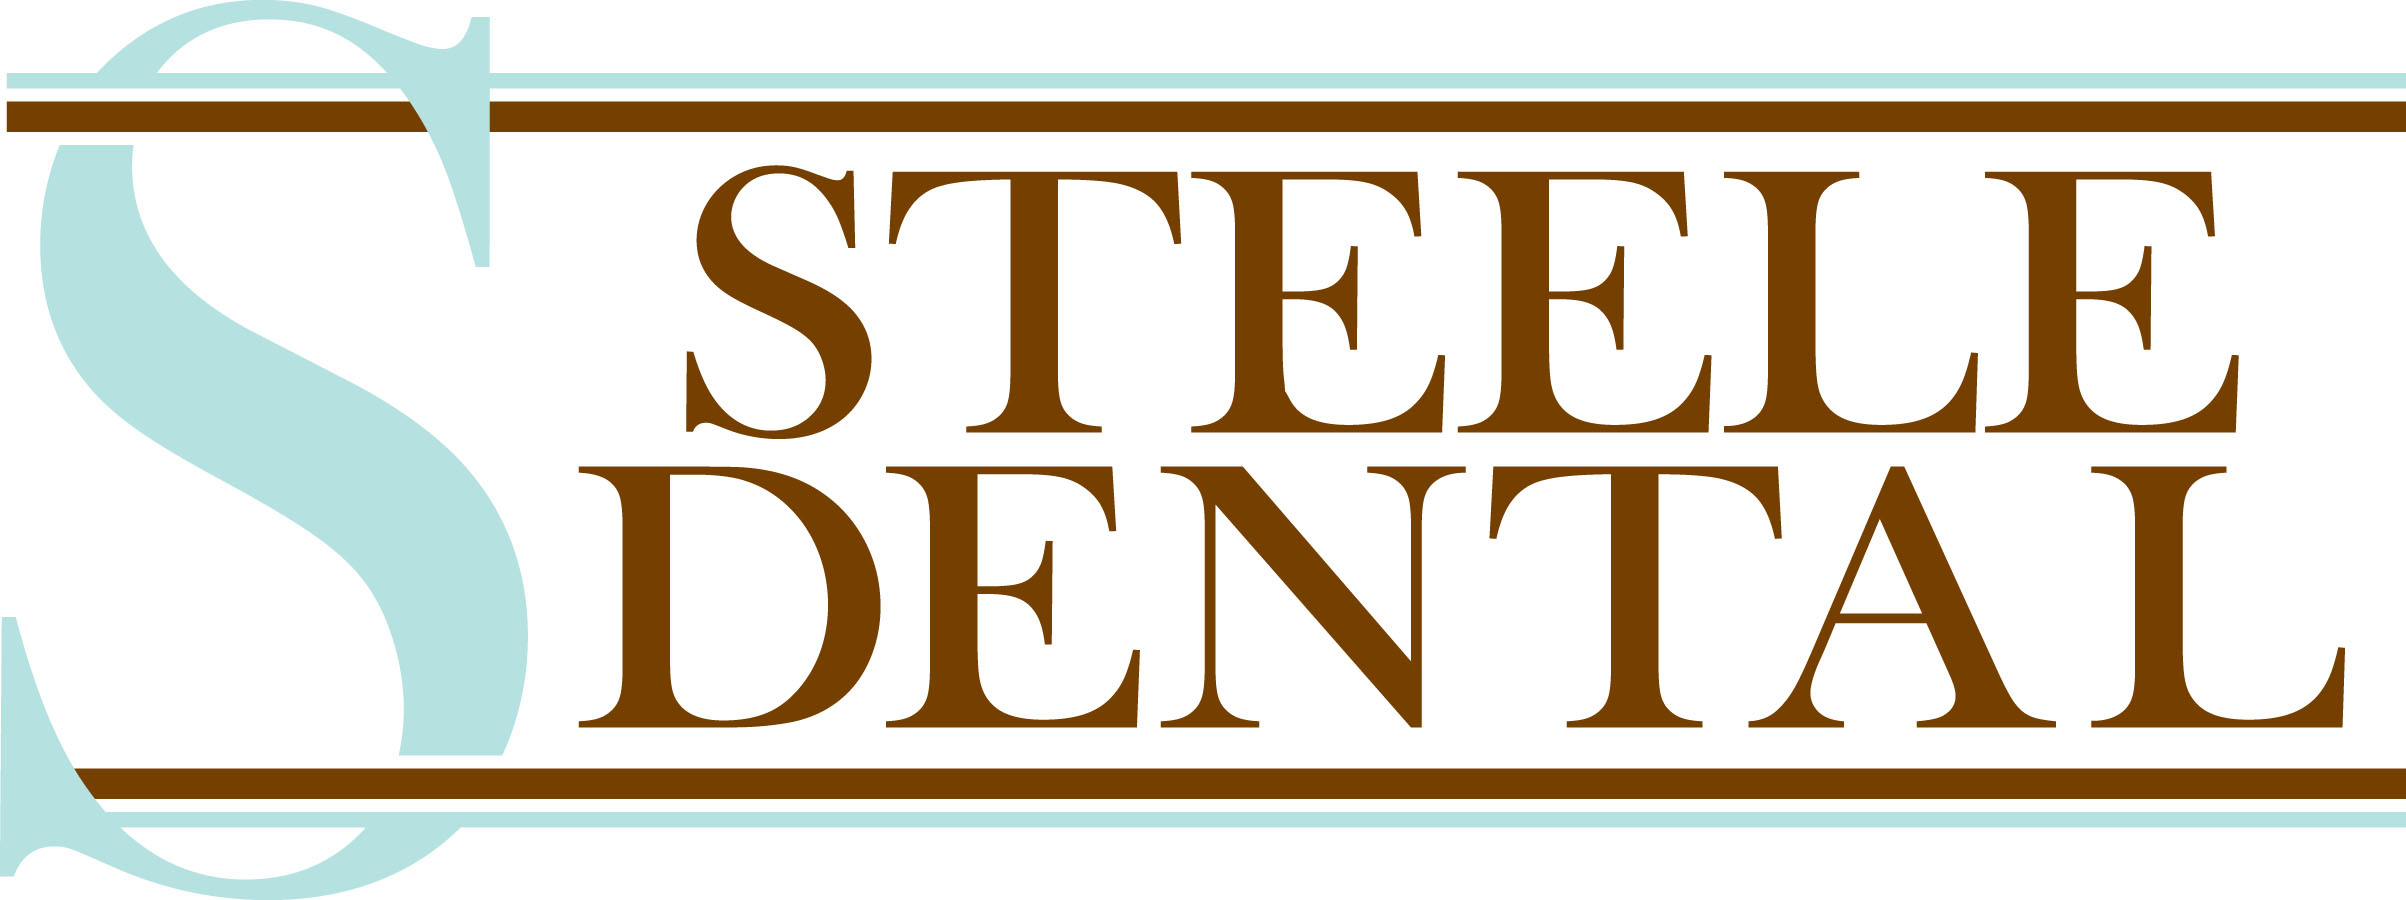 Steele Dental